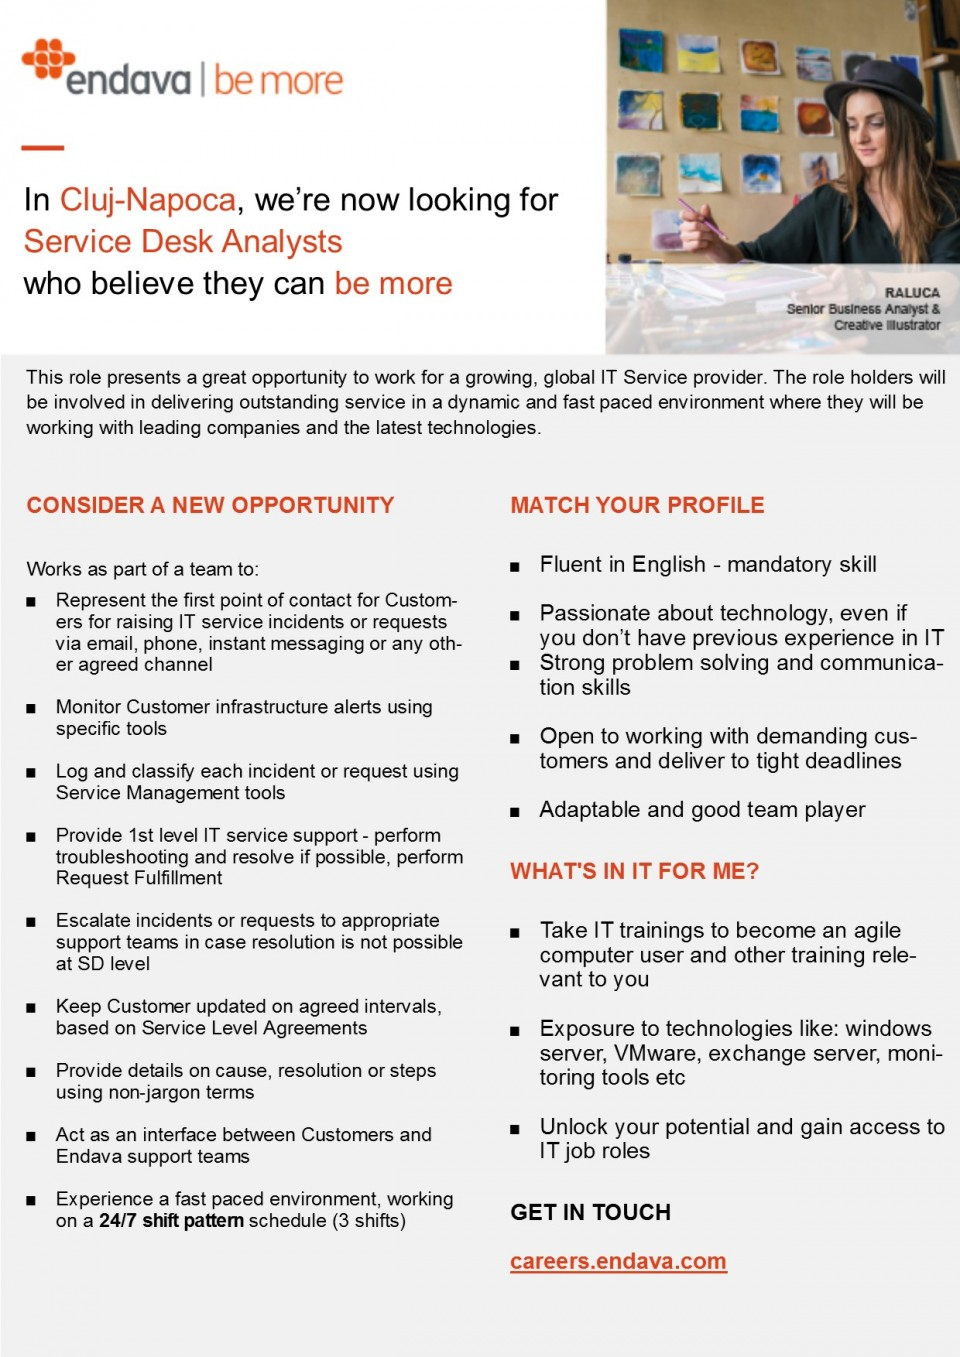 Fluent in English - mandatory skill Passionate about technology, even if you don't have previous experience in IT Strong problem solving and communication skills Open to working with demanding customers and deliver to tight deadlines Adaptable and good team player This role presents a great opportunity to work for a growing, global IT Service provider. The role holders will be involved in delivering outstanding service in a dynamic and fast paced environment where they will be working with leading companies and the latest technologies.   First point of contact for Customers for raising IT service incidents or requests via email, phone, instant messaging or any other agreed channel Monitor Customer infrastructure alerts using specific tools Log and classify each incident or request using Service Management tools Provide 1st level IT service support - perform troubleshooting and resolve if possible, perform Request Fulfillment Escalate incidents or requests to appropriate support teams in case resolution is not possible at SD level Keep Customer updated on agreed intervals, based on Service Level Agreements Provide details on cause, resolution or steps using non-jargon terms Act as an interface between Customers and Endava support teamsWhat's in it for me?Get a full time Job Experience a fast paced environment, working on a 24/7 shift pattern schedule  What's in it for me?  Take IT trainings to become an agile computer user and other training relevant to you Gain exposure to technologies like: windows server, VMware, exchange server, monitoring tools etc Unlock your potential and gain access to IT job roles Communicate with customers, in a customer-oriented environment Endava is a well-established IT Services company, with over 1000 staff operating from our headquarters in London and offices in the UK (London, Oxford), USA (New York), Romania (Bucharest, Cluj-Napoca, Iasi) and Moldova (Chisinau). We design, implement and manage business-critical systems and digital se